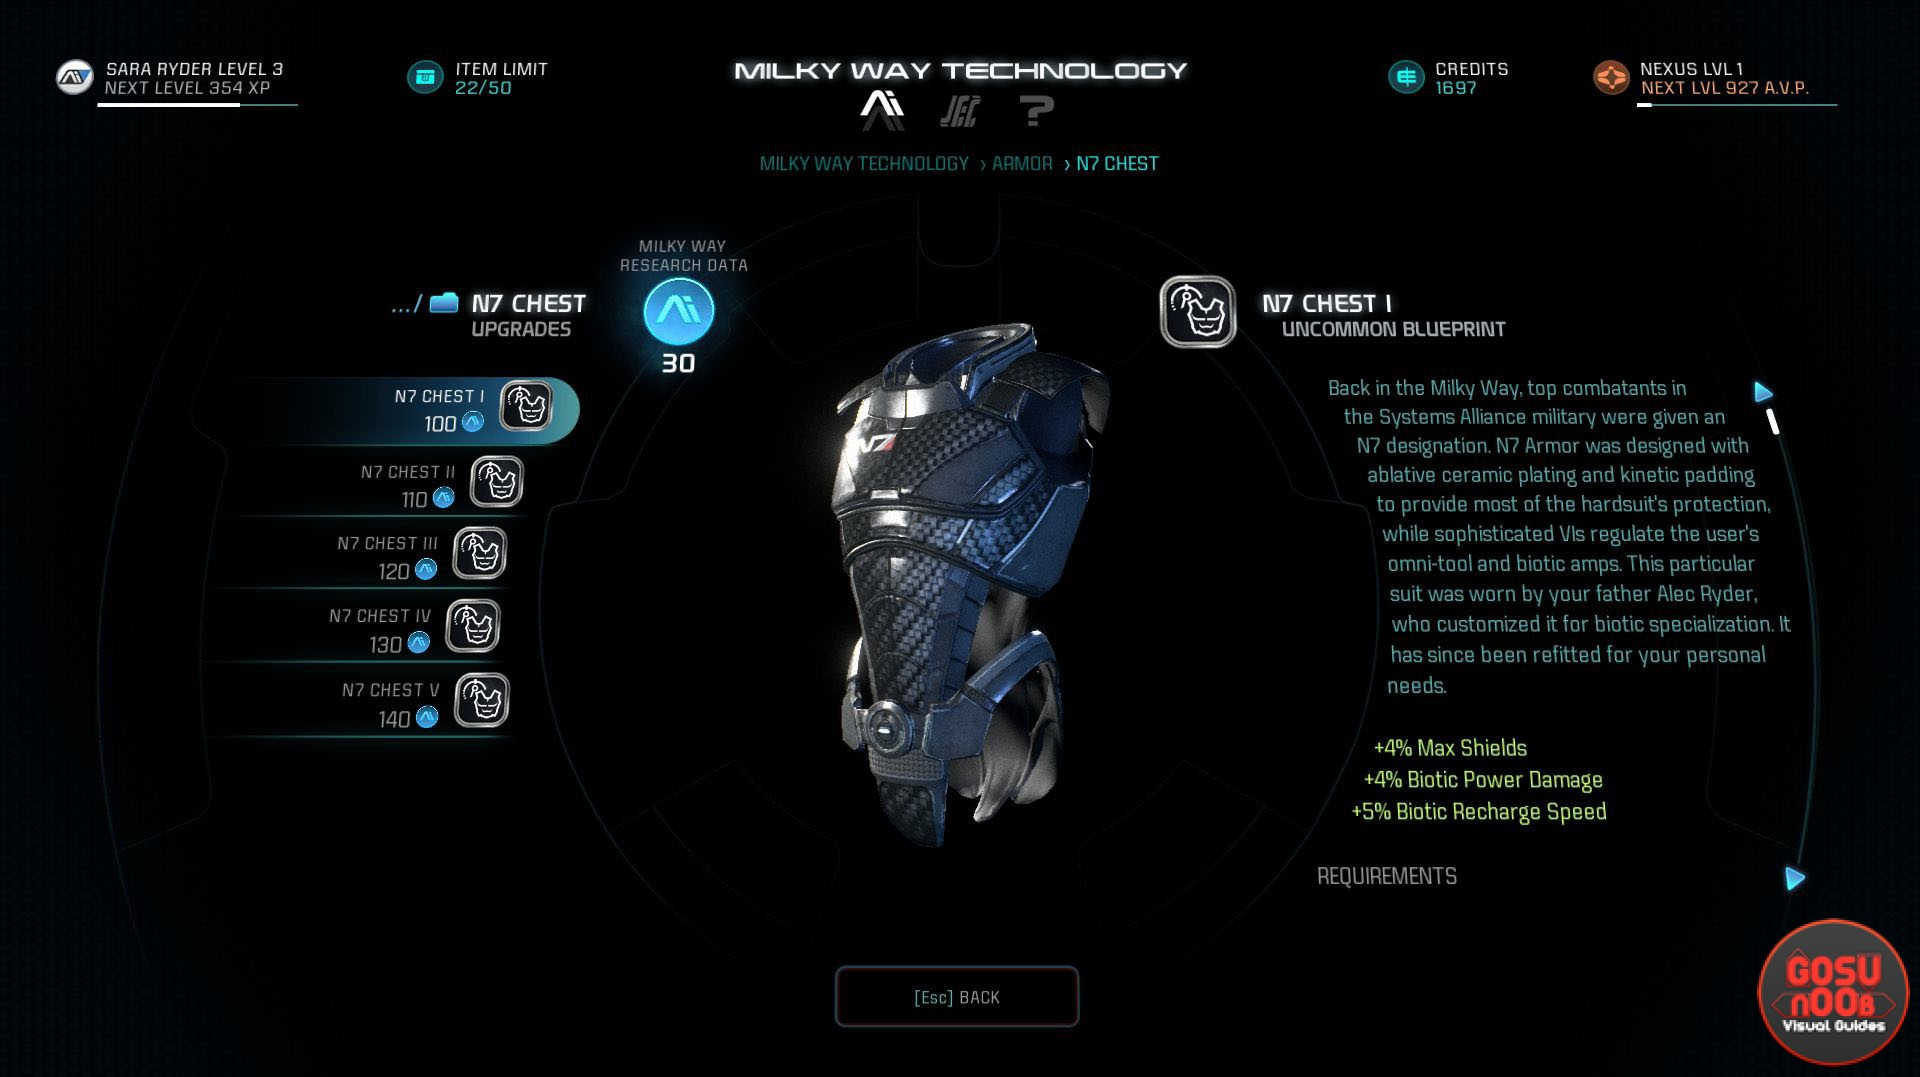 N7 Armor Mass Effect Andromeda: Mass Effect Andromeda How To Get N7 Armor